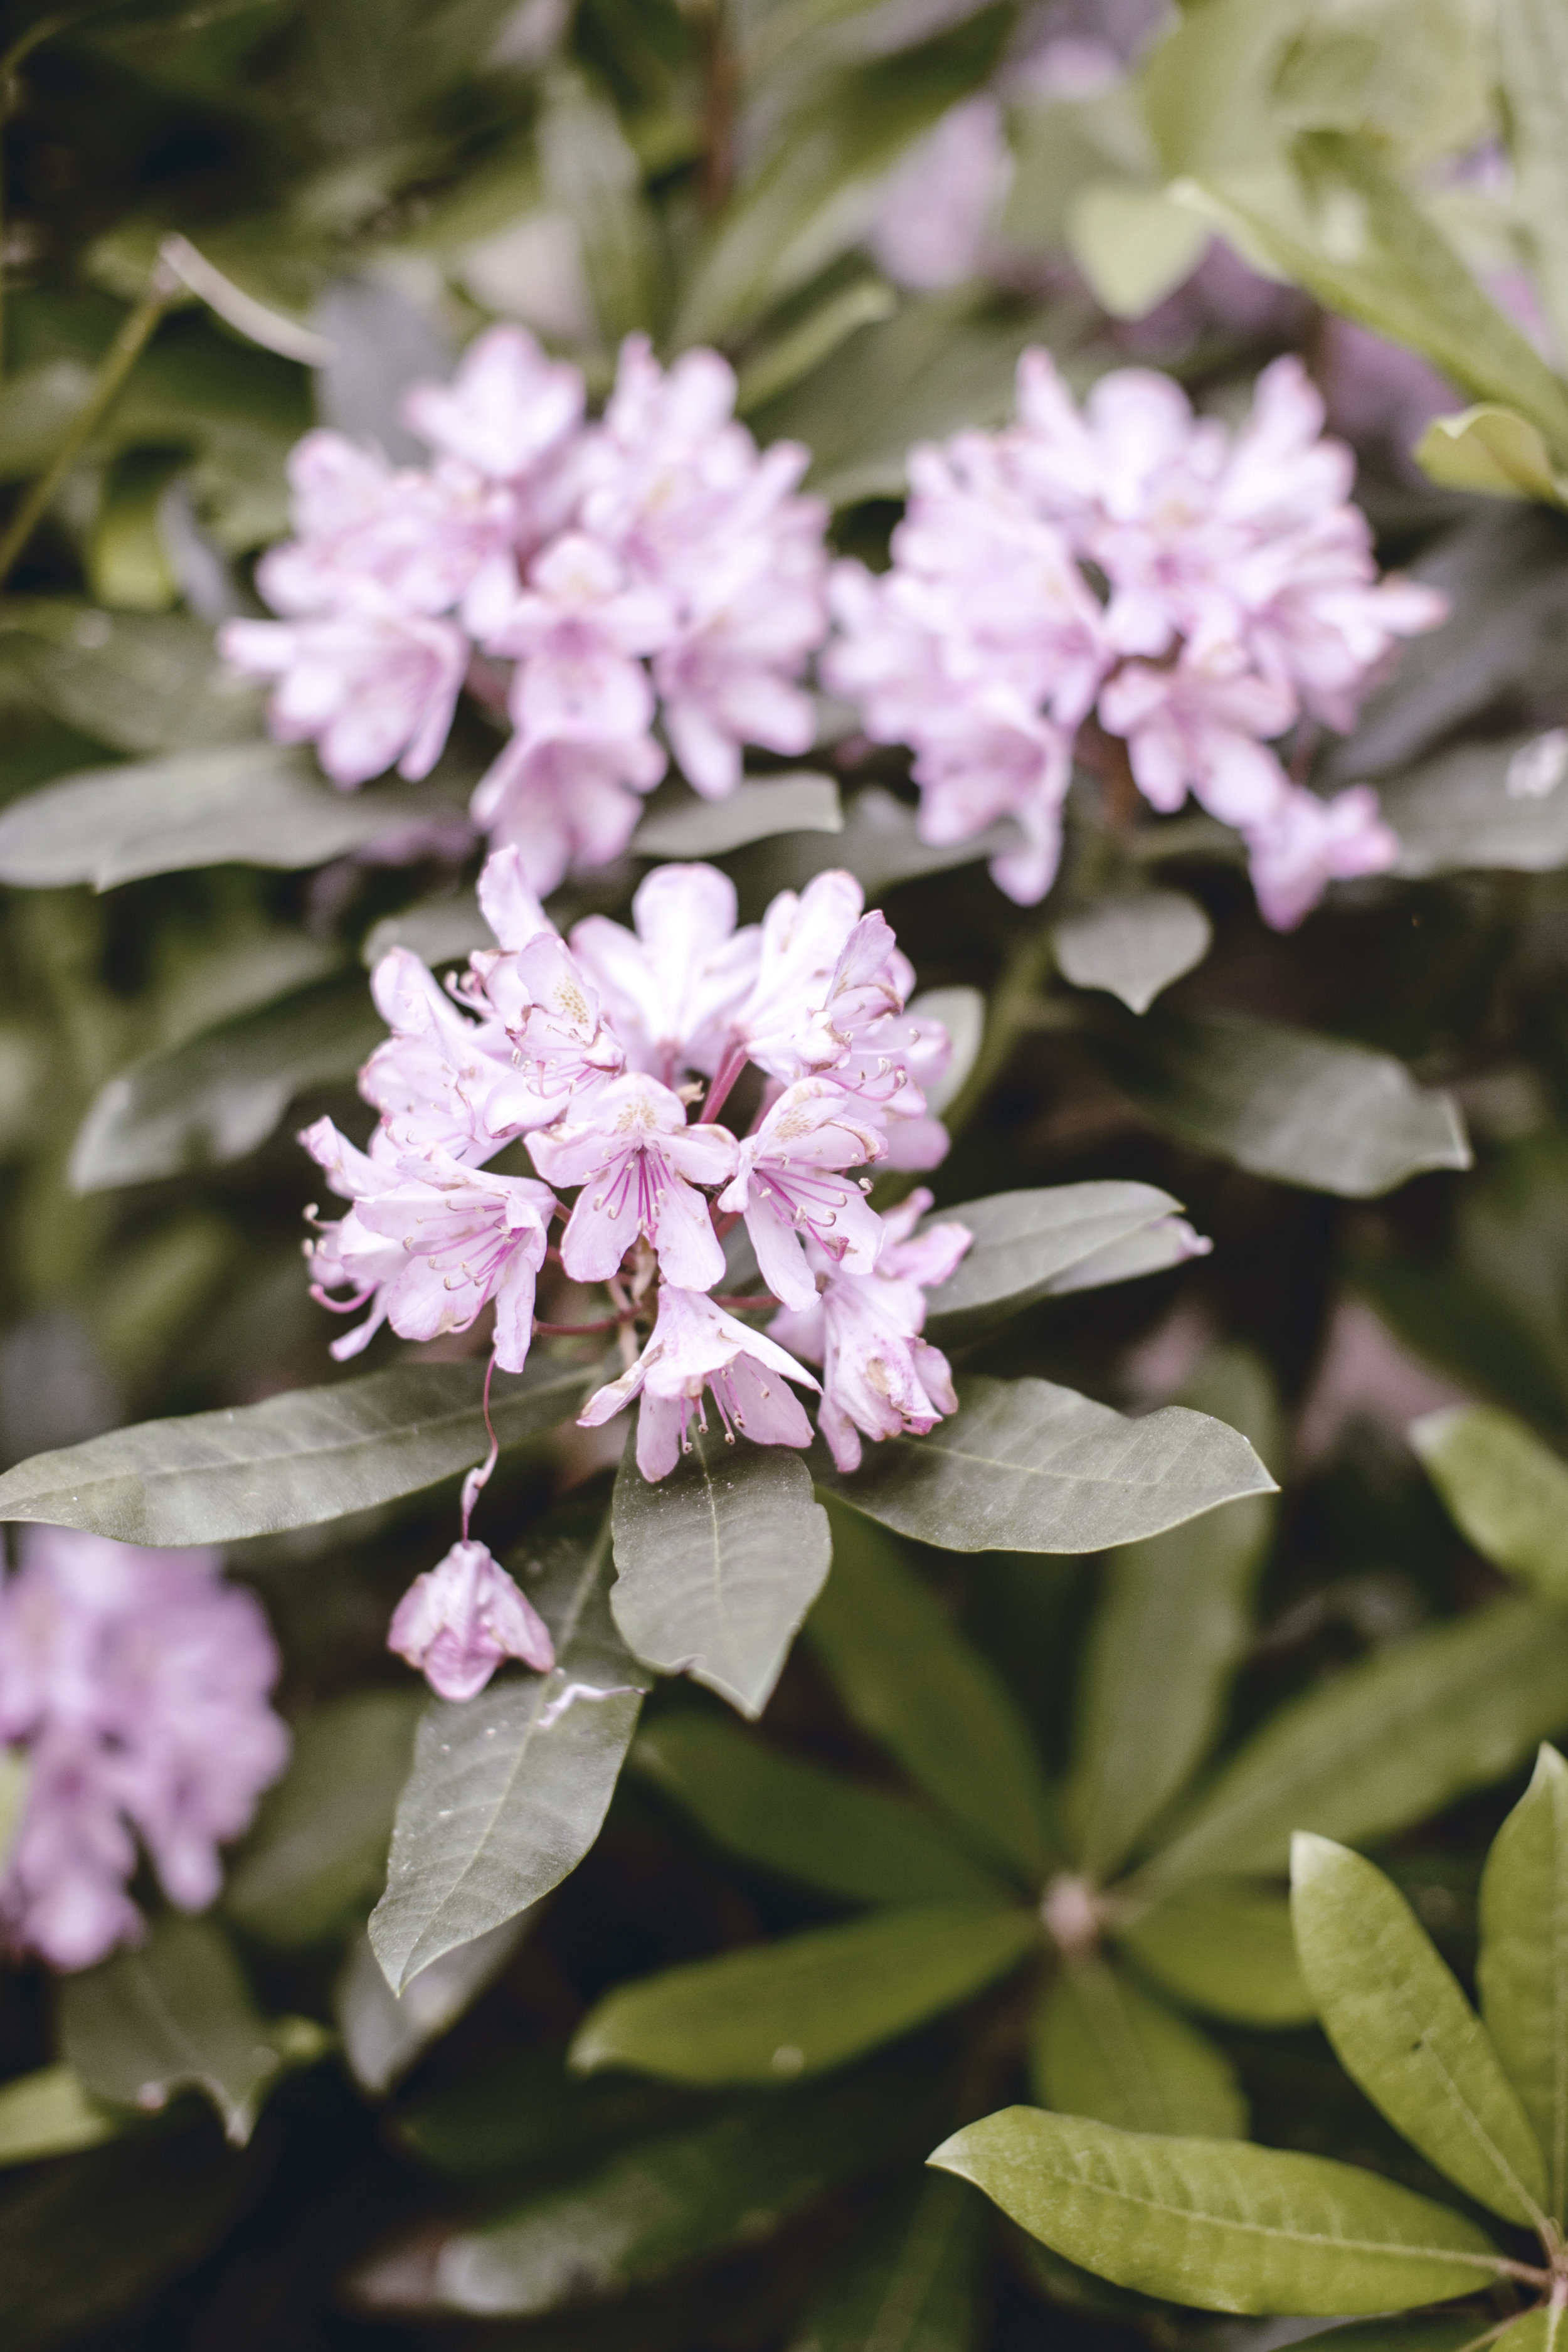 rhododendron / heirloomed